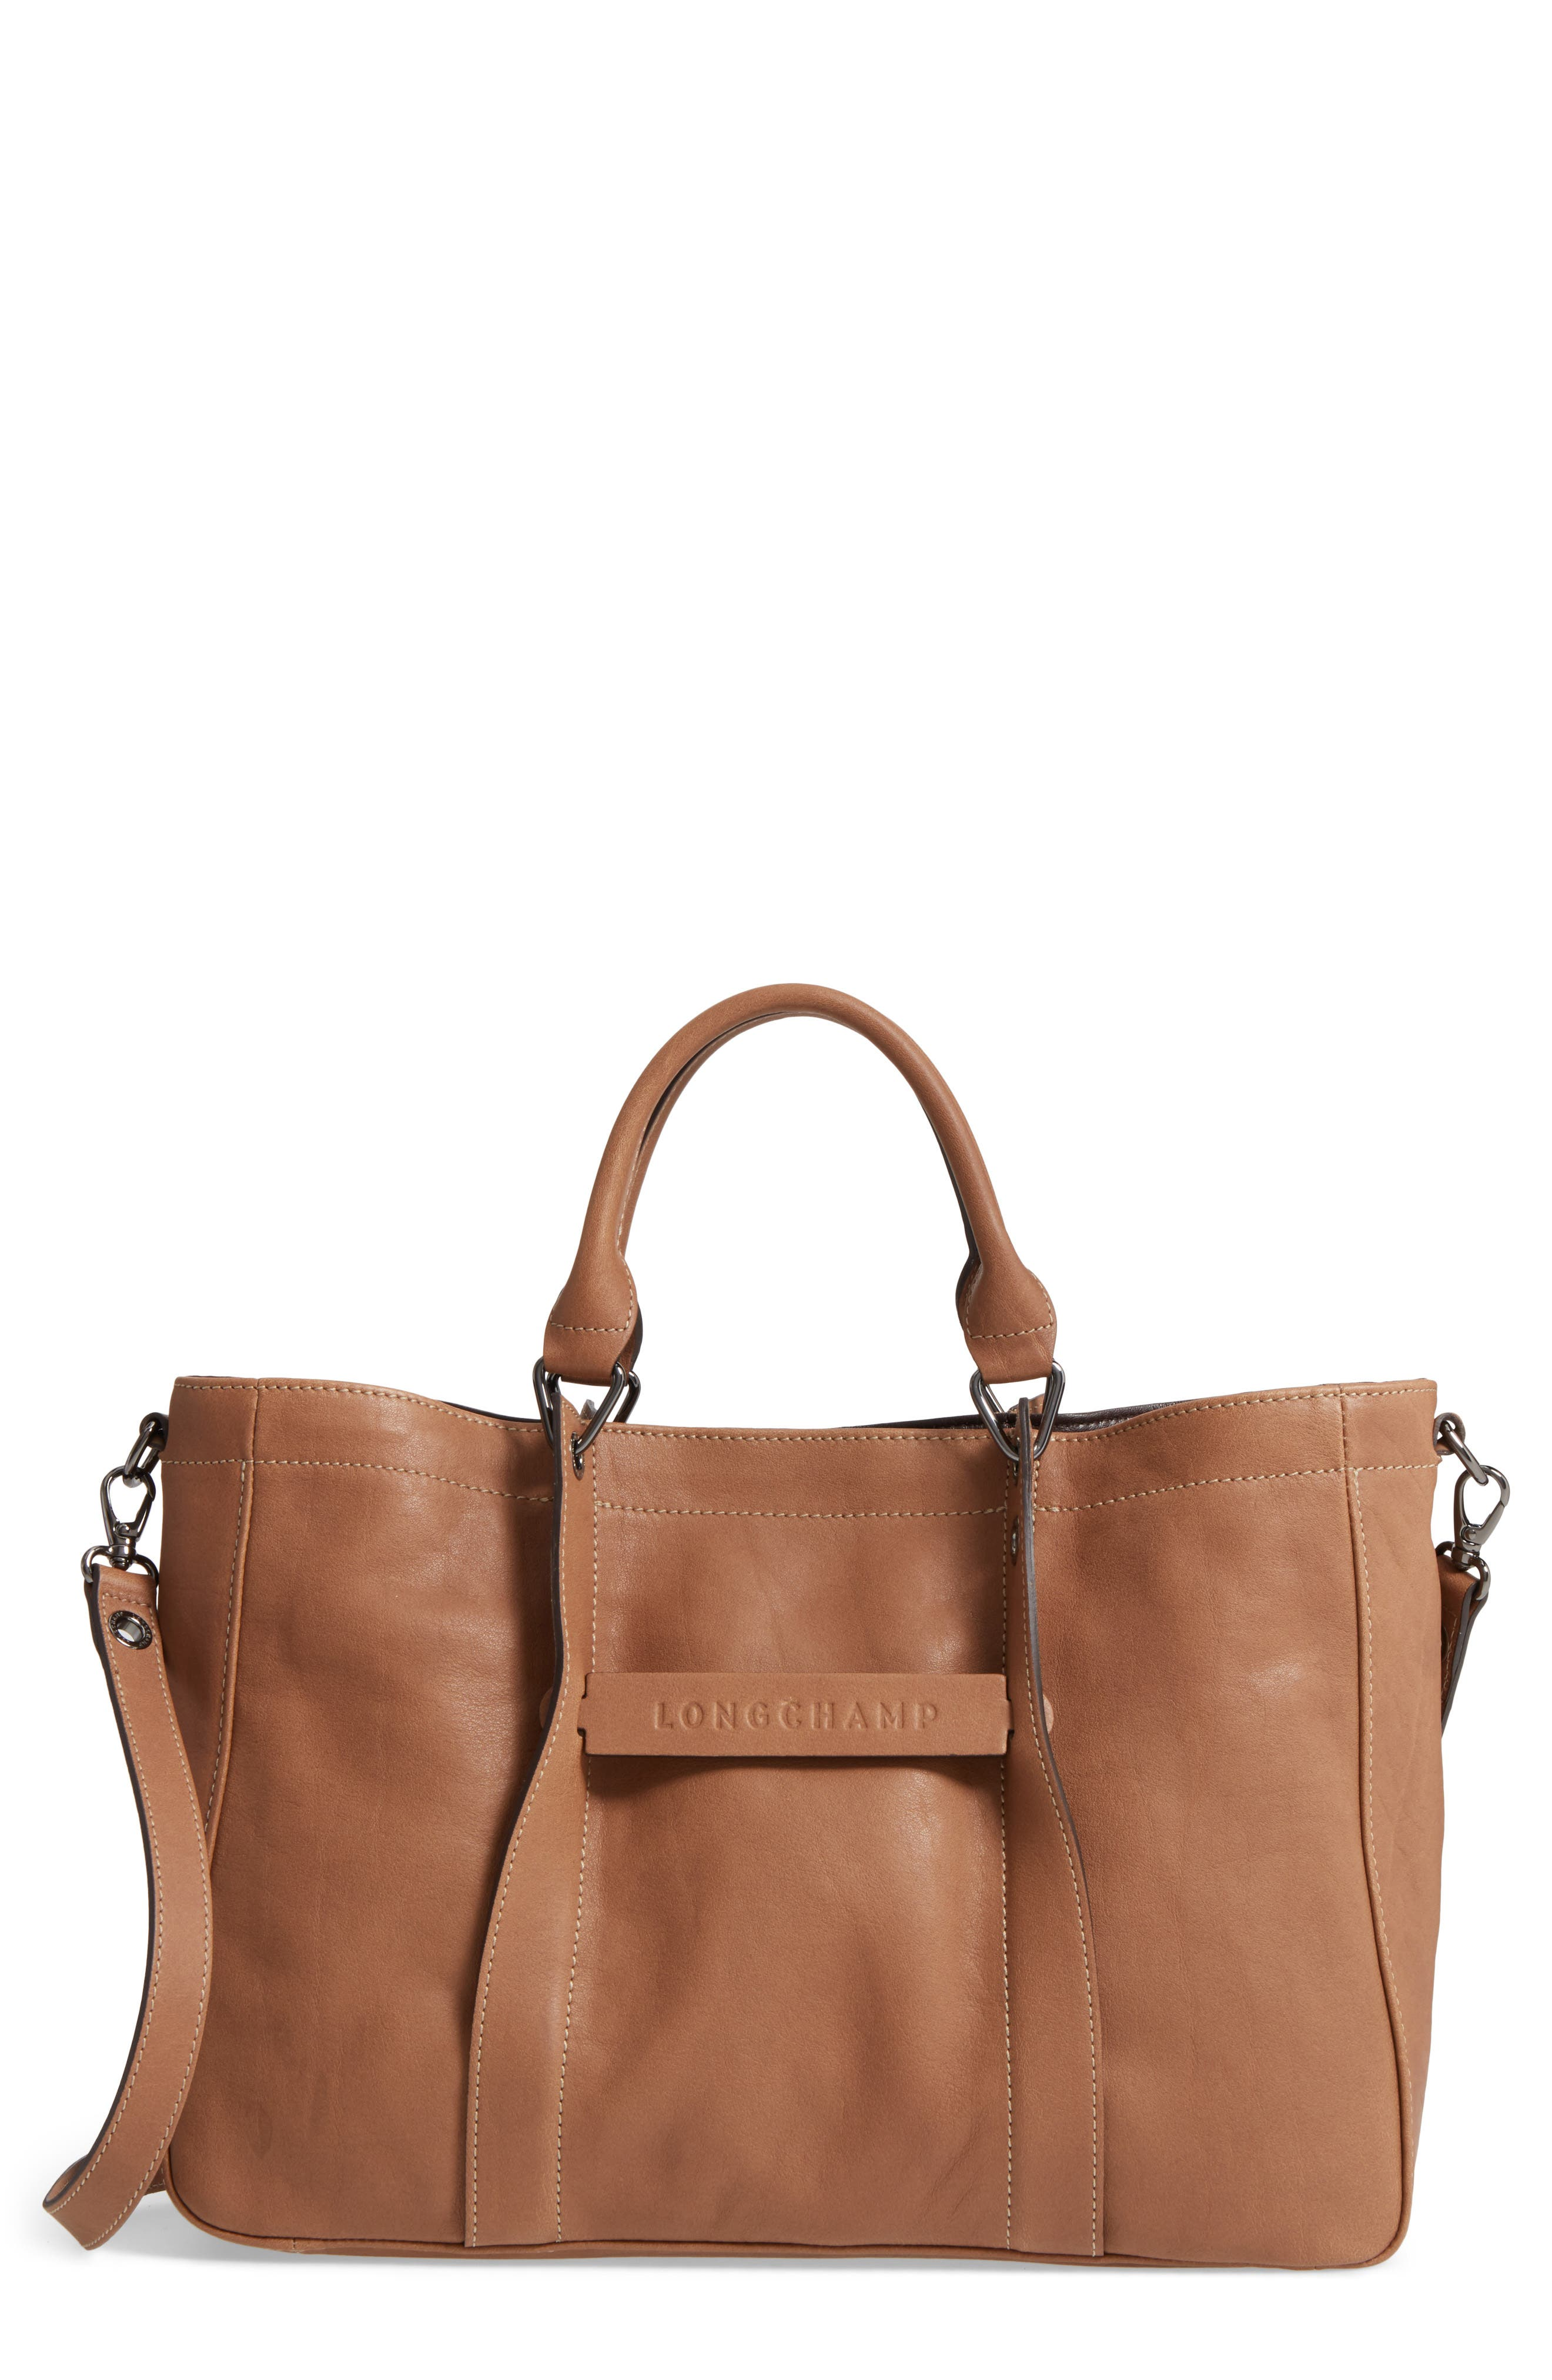 3D Leather Tote,                             Main thumbnail 1, color,                             250